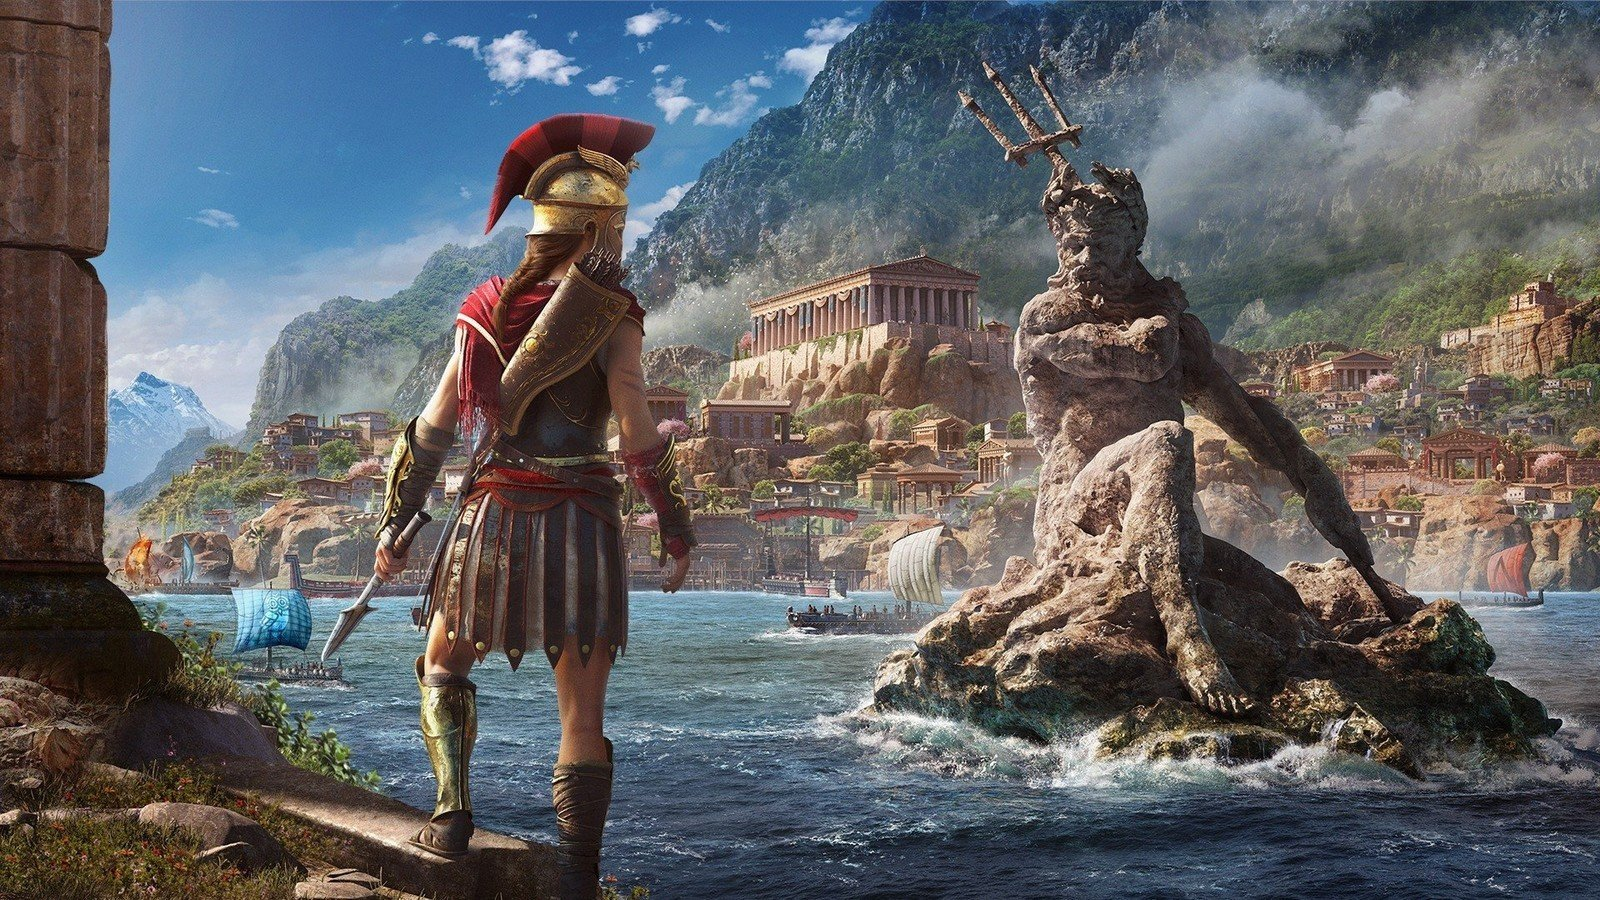 Assassin's Creed Odyssey update 1.1.2 patch notes | Shacknews